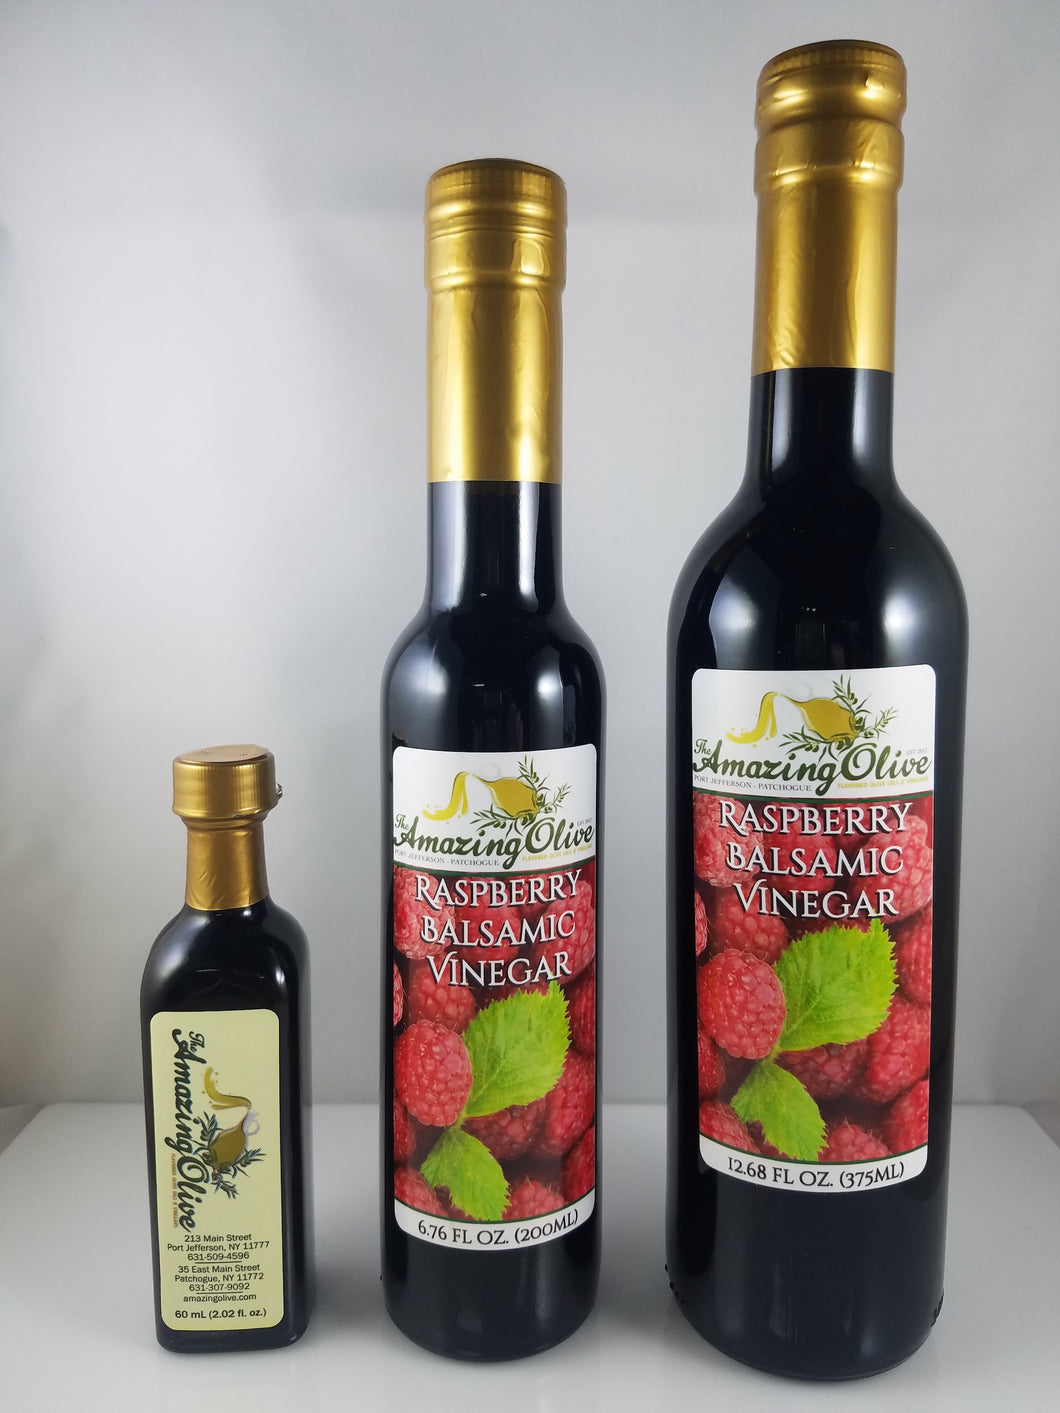 Dark Raspberry Balsamic Vinegar